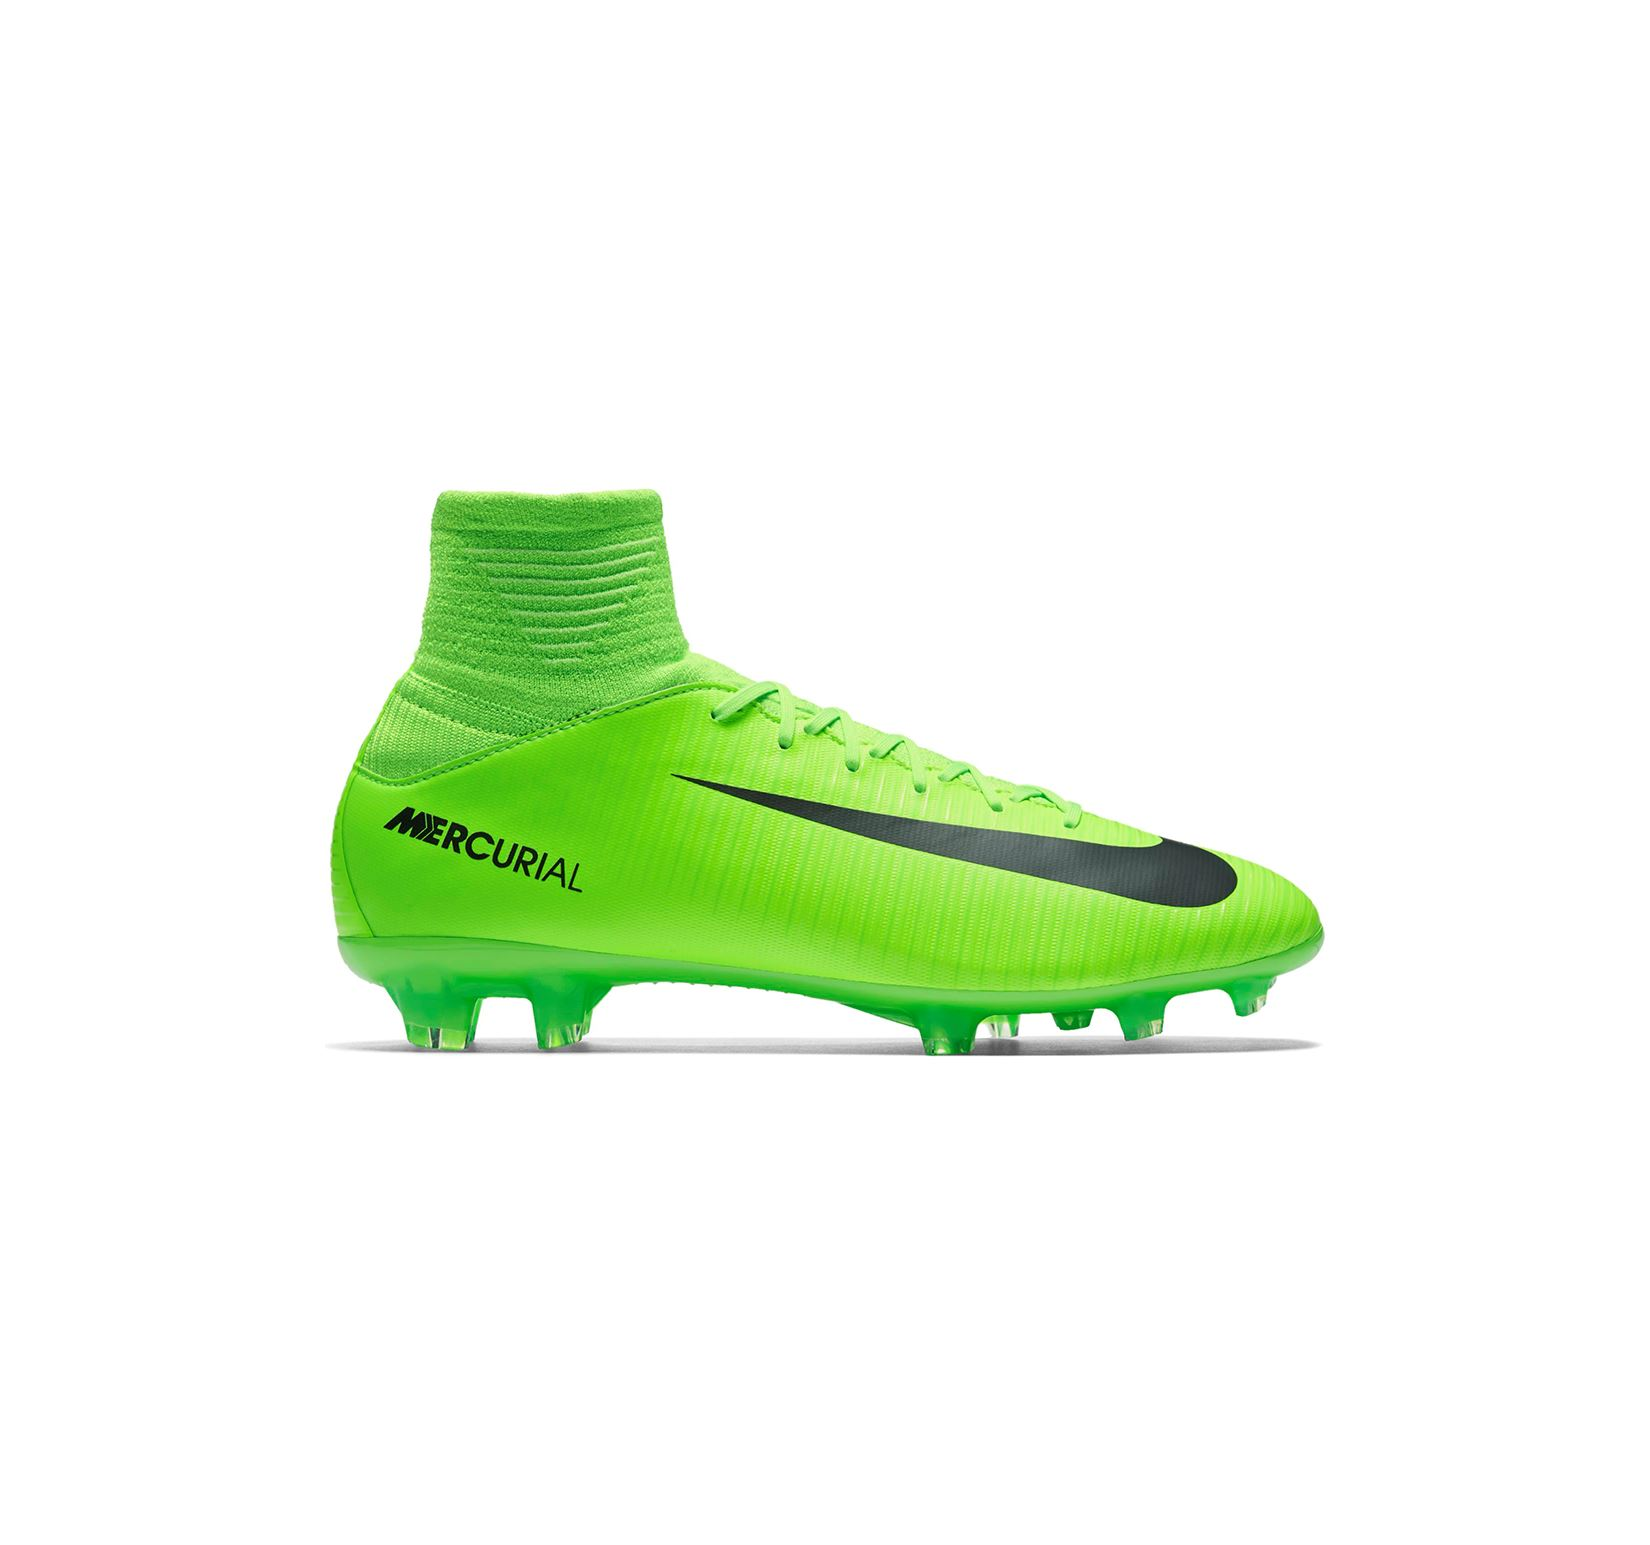 new arrival c8564 547f8 Nike Mercurial Superfly V FG Junior. Laddar zoom